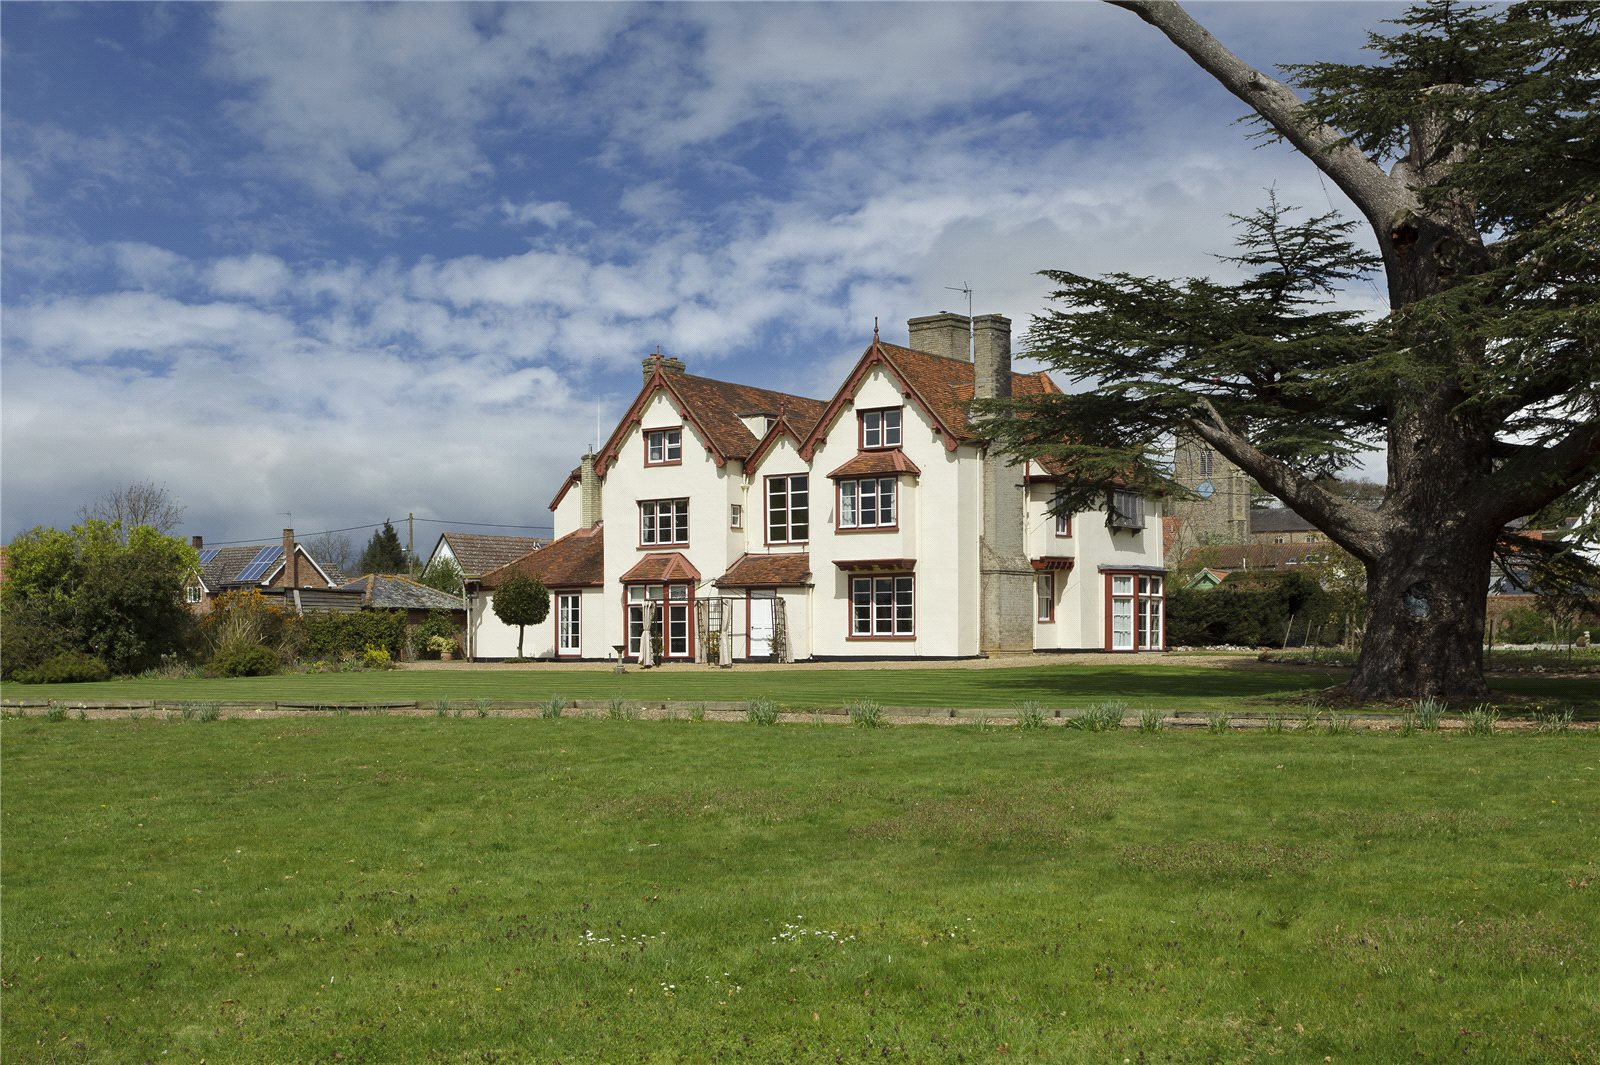 Single Family Home for Sale at The Folly, Haughley, Stowmarket, Suffolk, IP14 Stowmarket, England